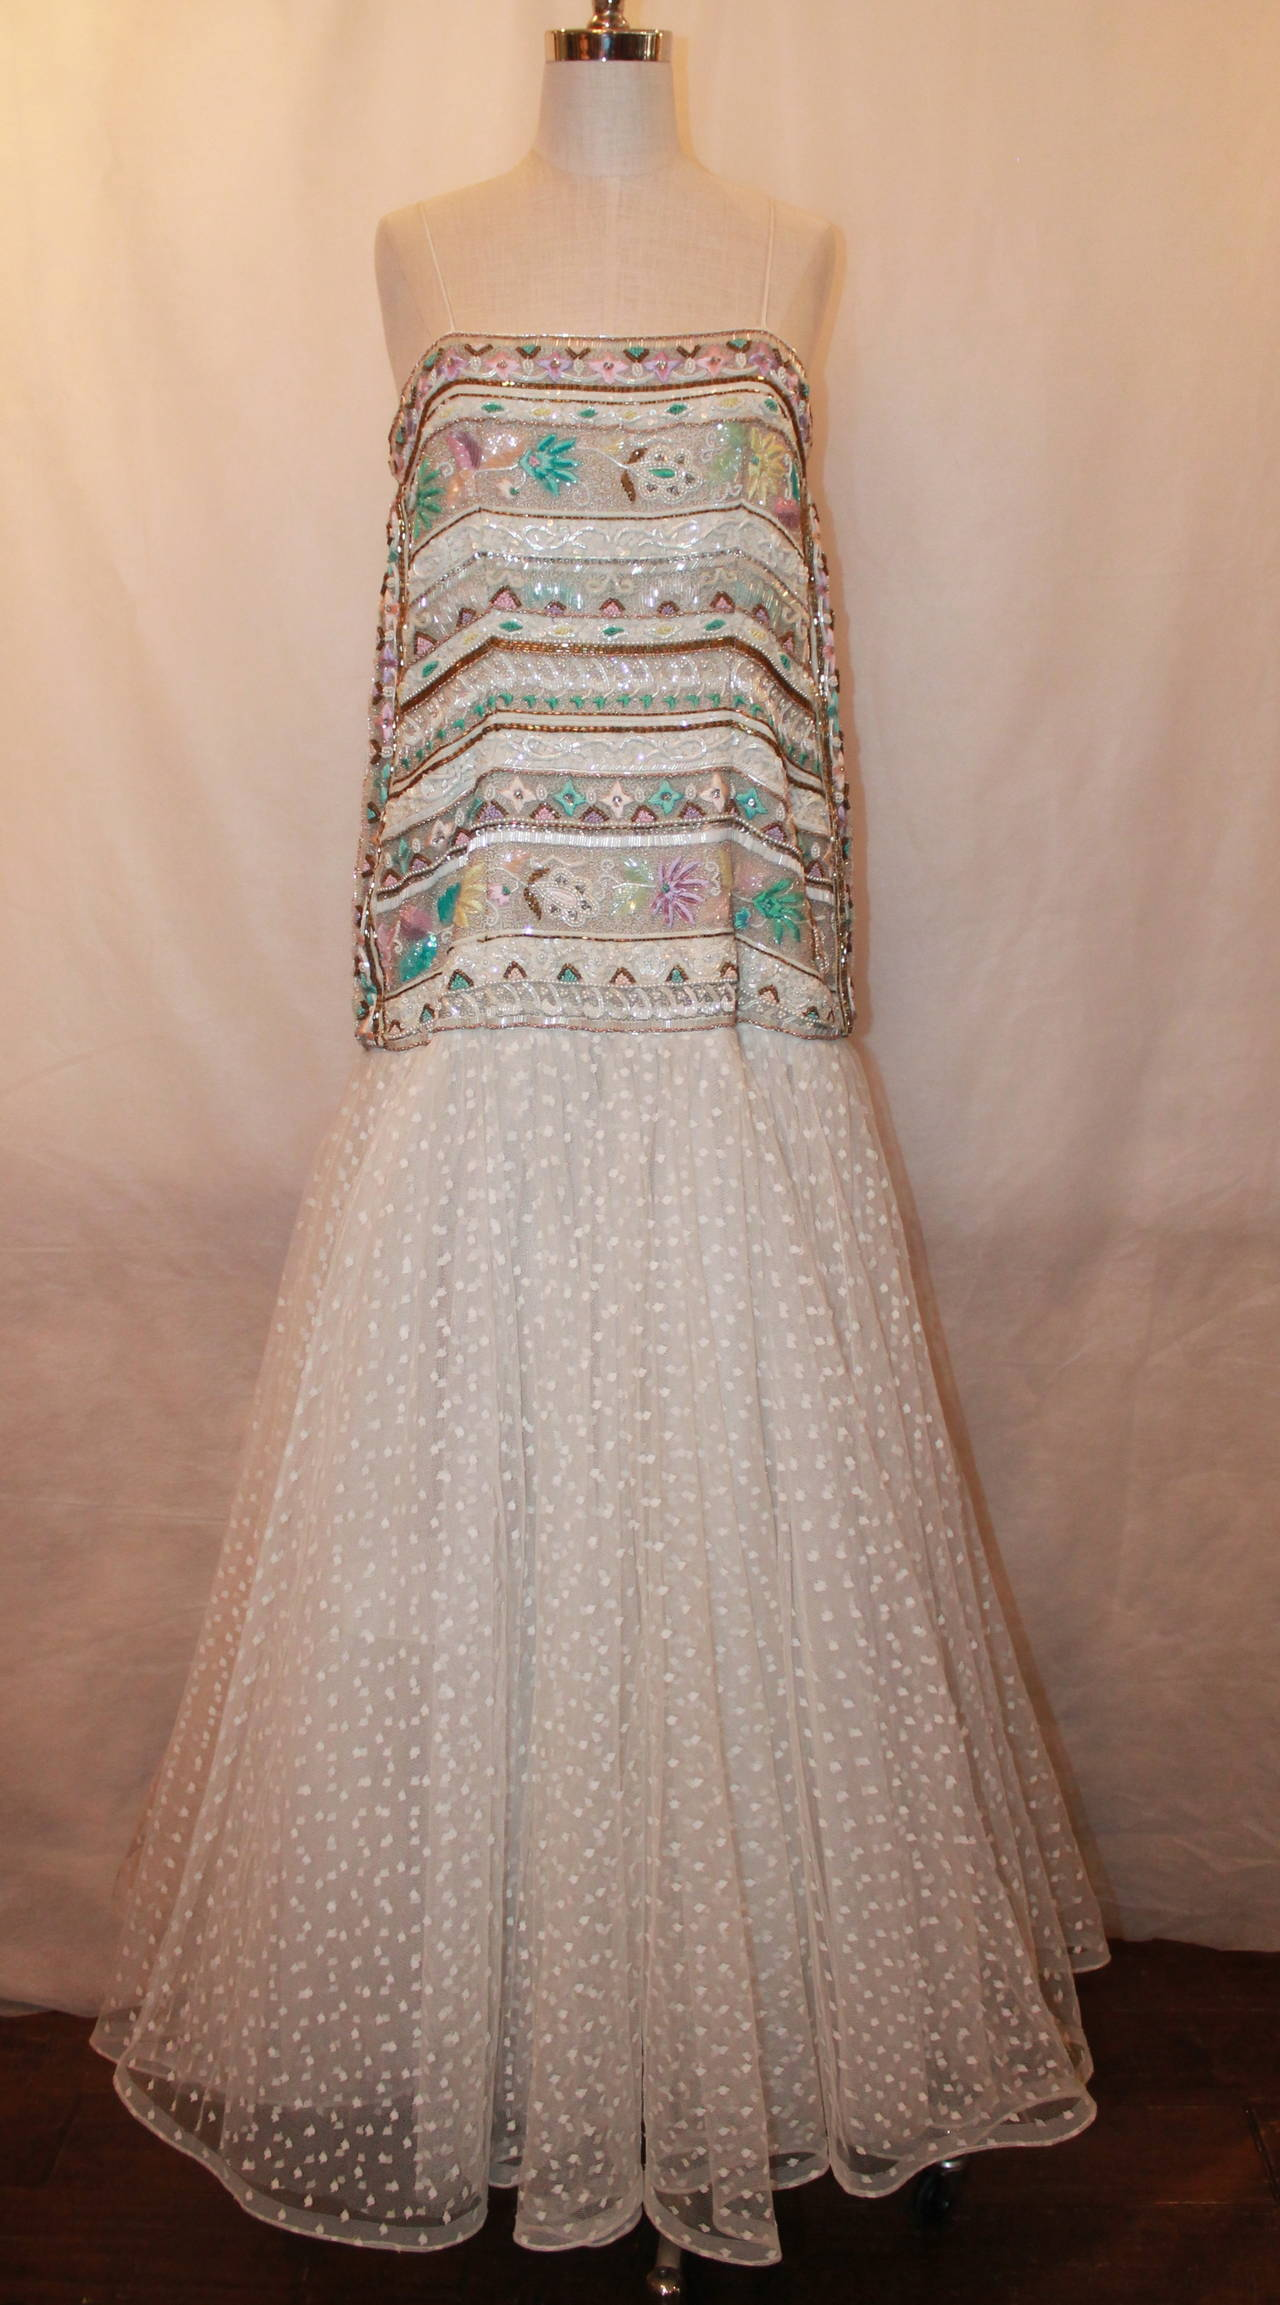 Richilene 1980's Vintage White Embroidered & Beaded Gown - 12. This gown is in good vintage condition with light wear consistent with age. A few beads are beginning to come undone. The beads and embroidery is multi-colored and floral. The skirt